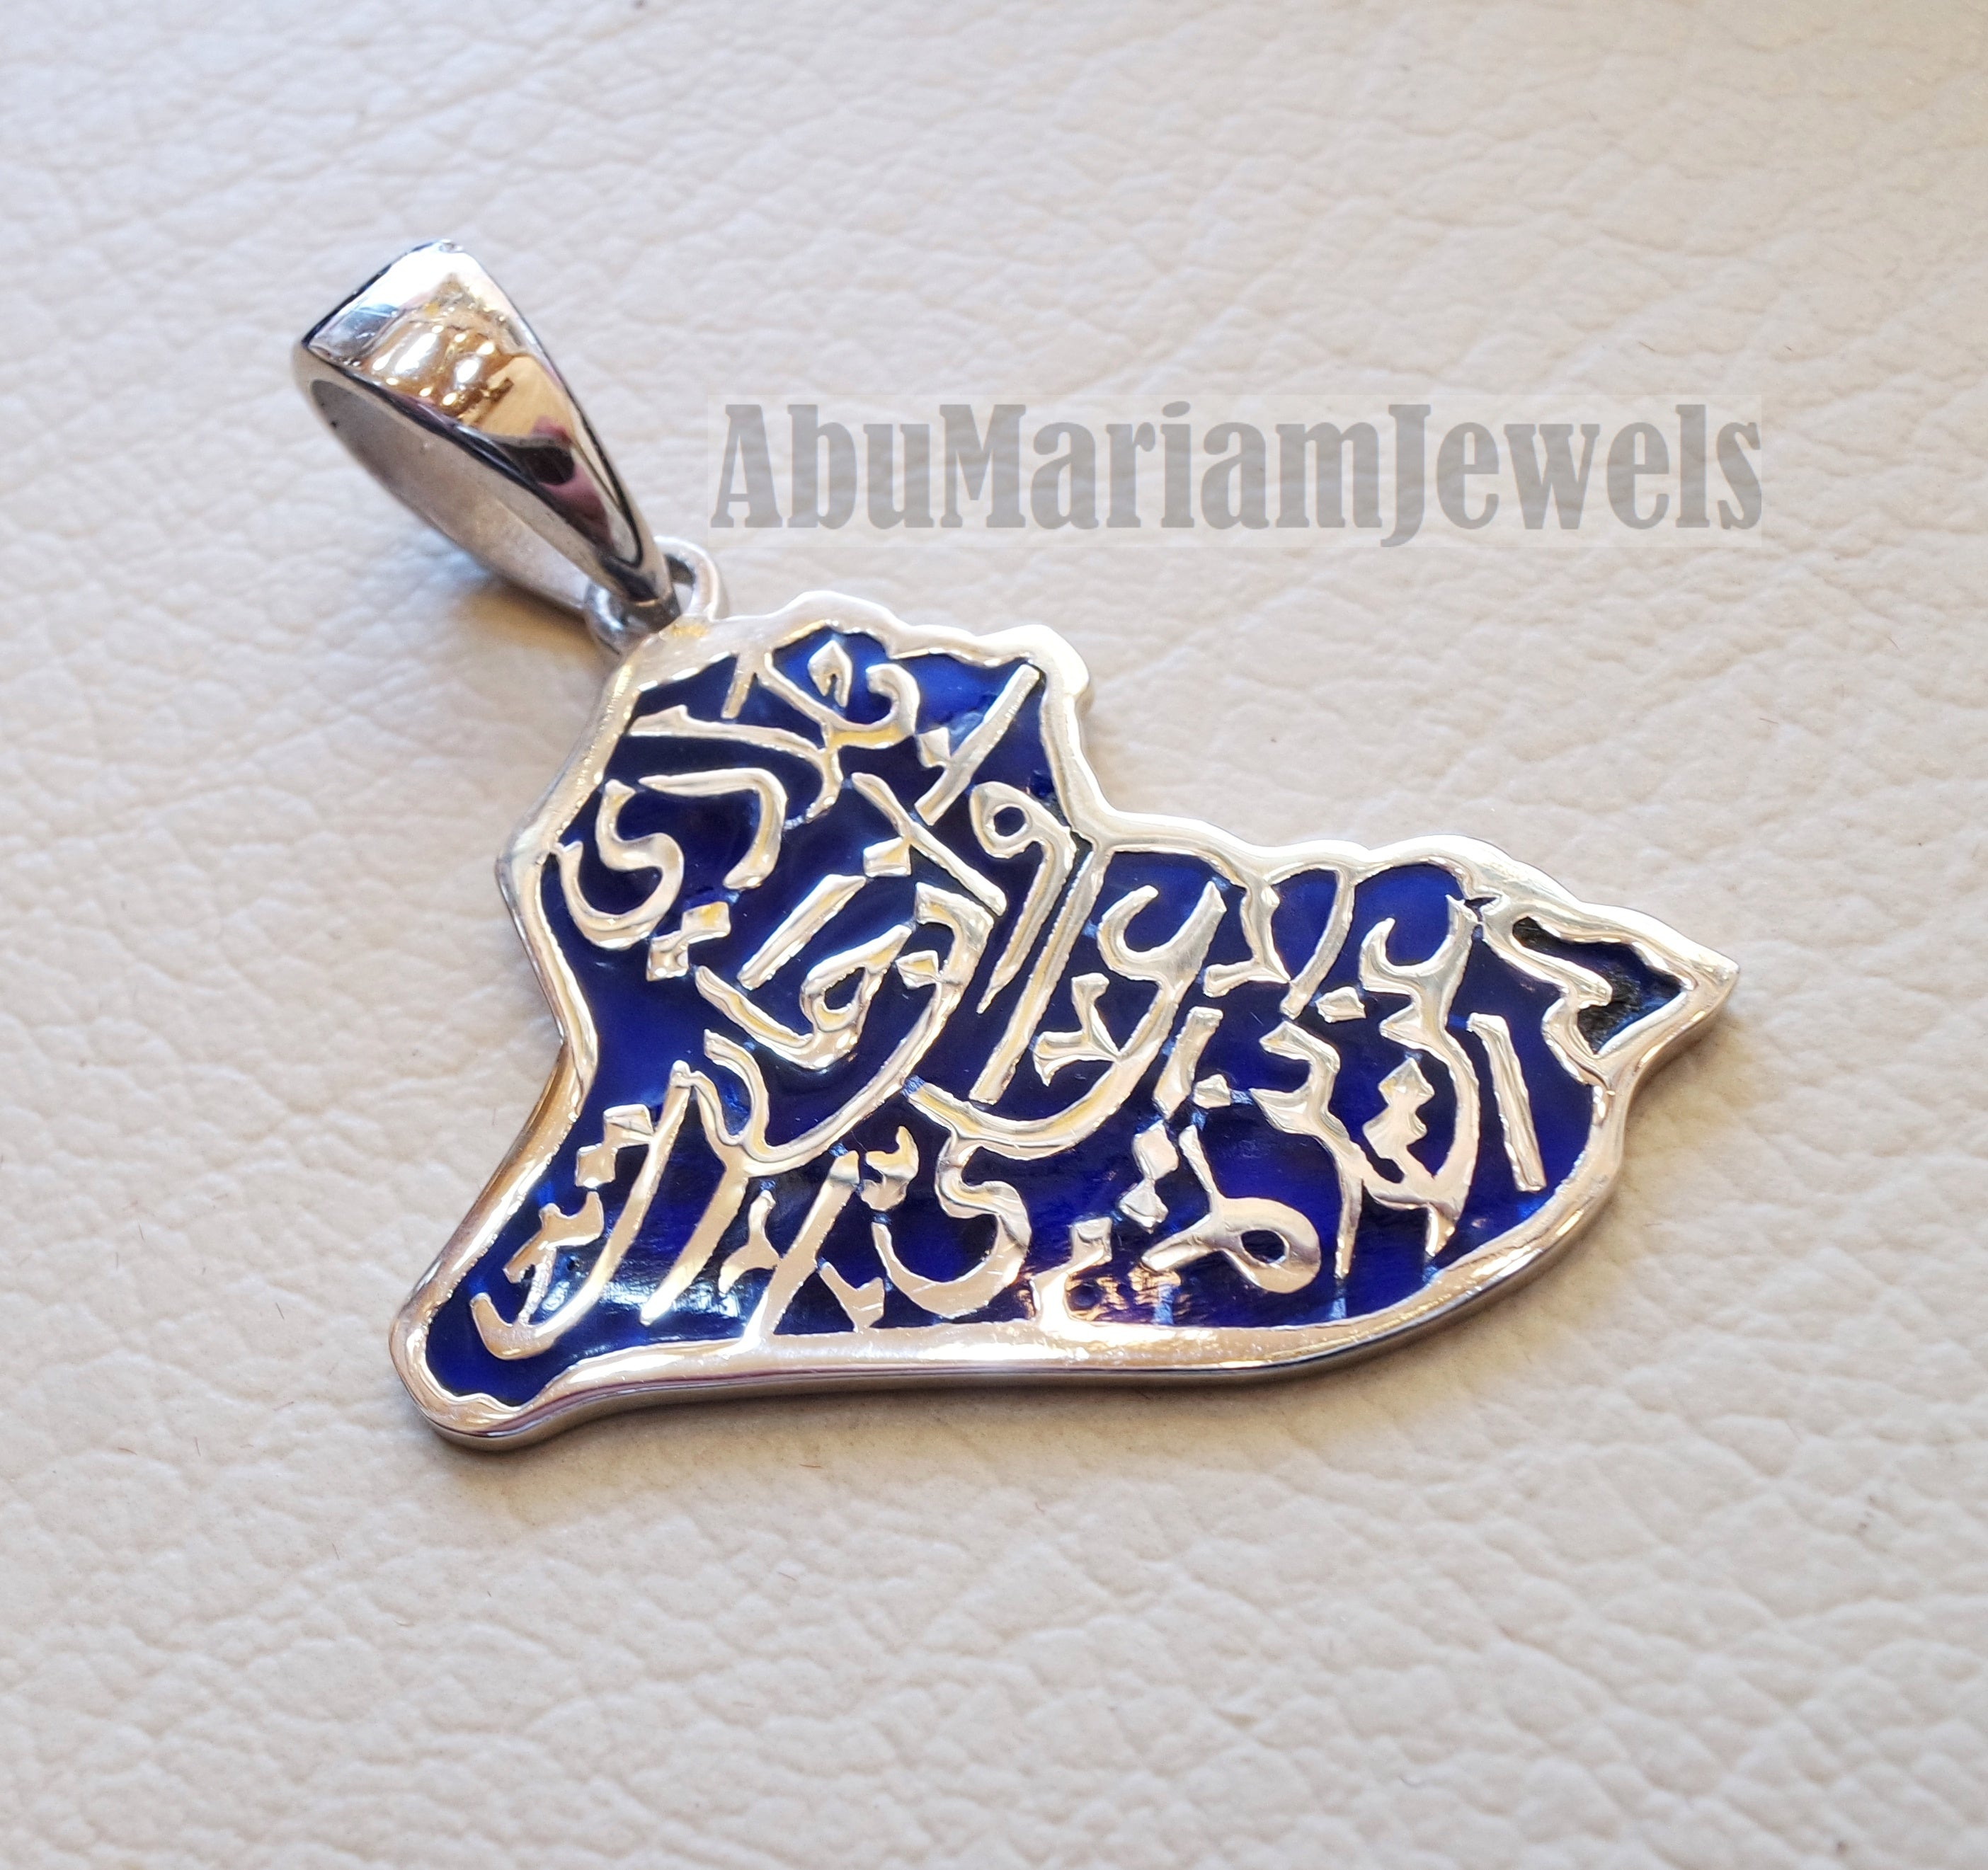 Iraq map with frame pendant with famous poem verse sterling silver 925 with dark blue enamel مينا jewelry arabic fast shipping خارطة العراق